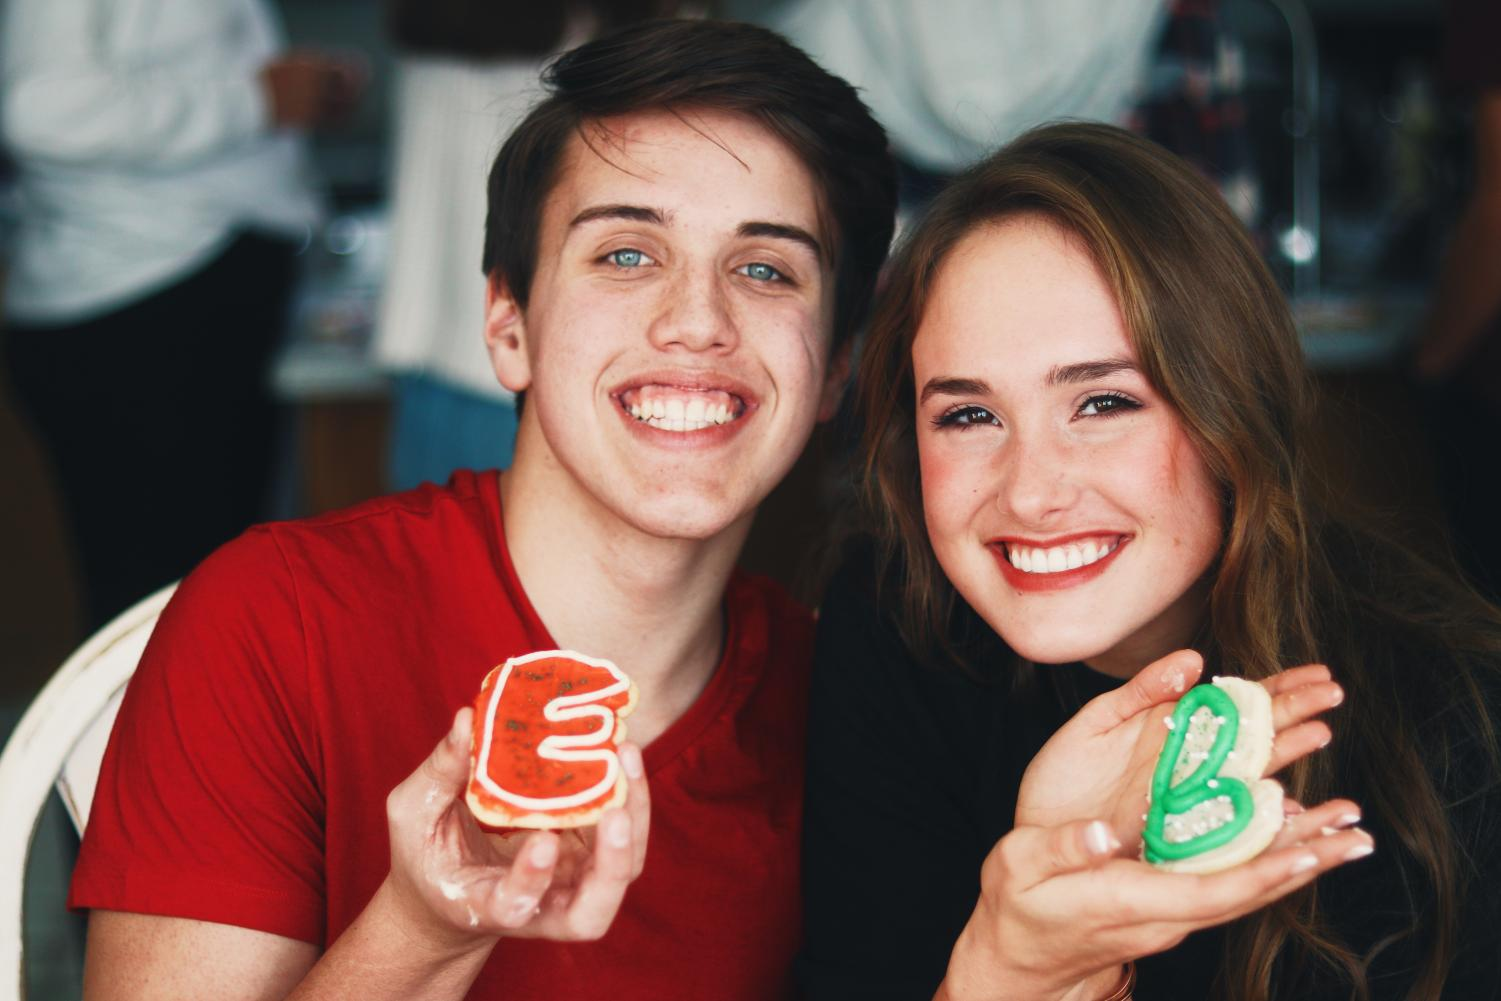 Benson Gugelman and Ellie Wolfe decorating Christmas cookies on their day date.